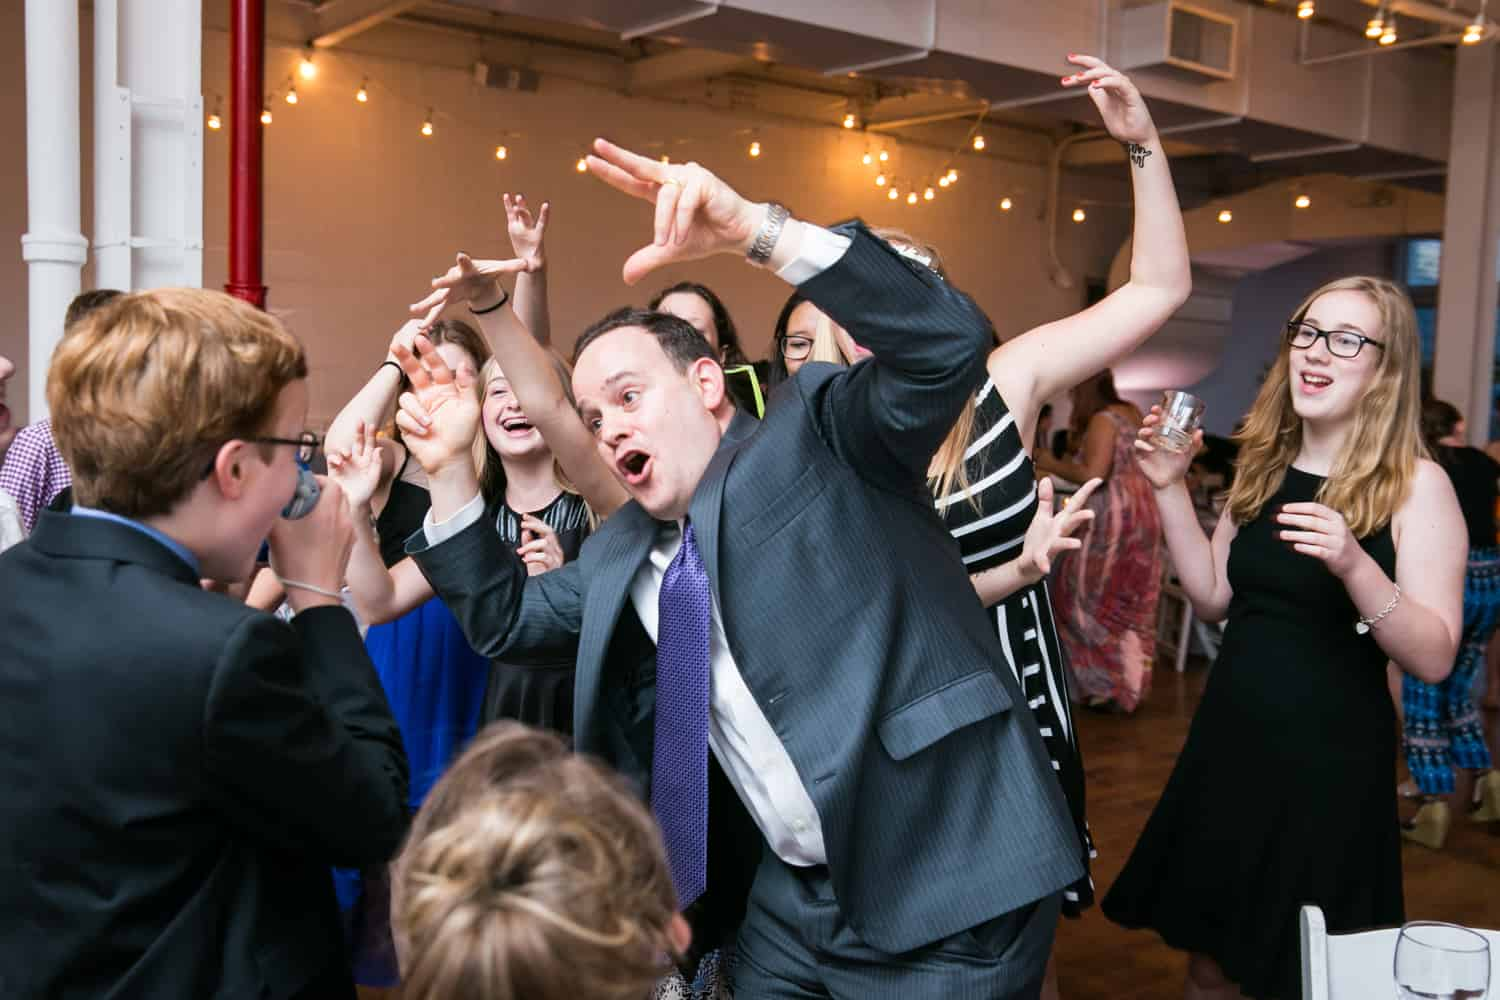 Guests dancing crazy in front of camera for an article on how to plan the perfect bar mitzvah